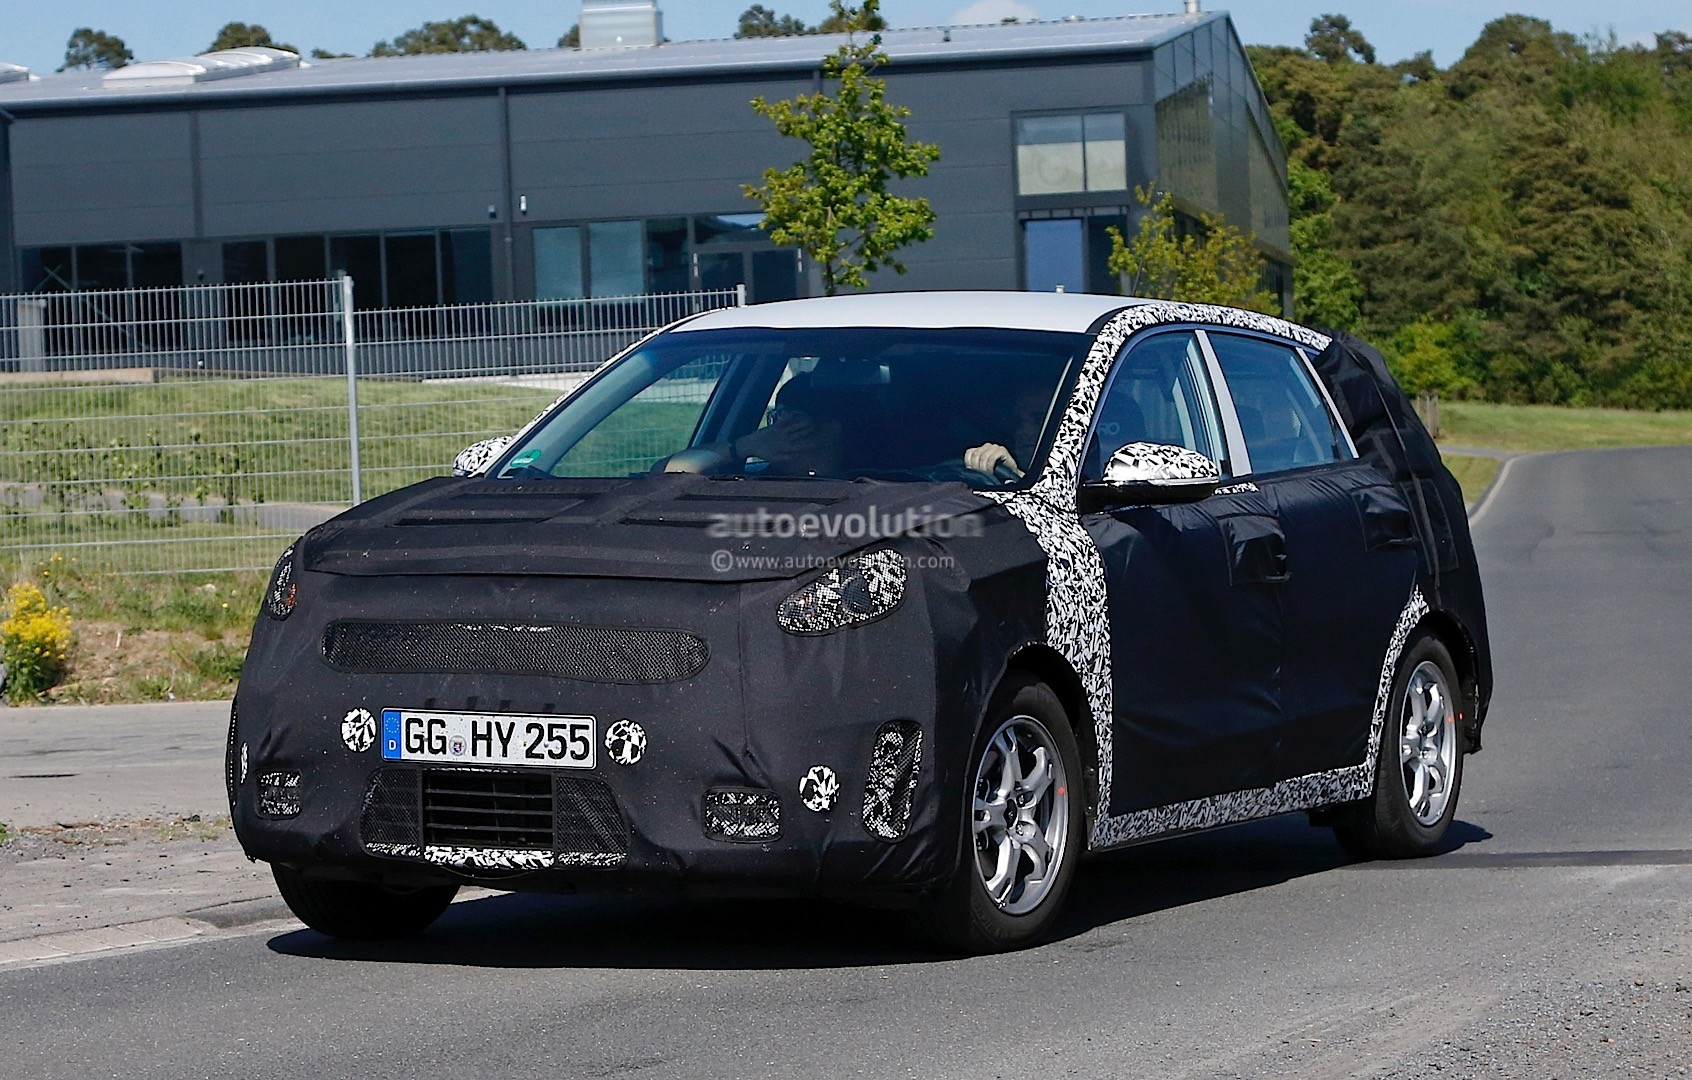 2016 - [Kia] Niro  Kia-kx3-niro-prototype-spied-in-germany-photo-gallery_10